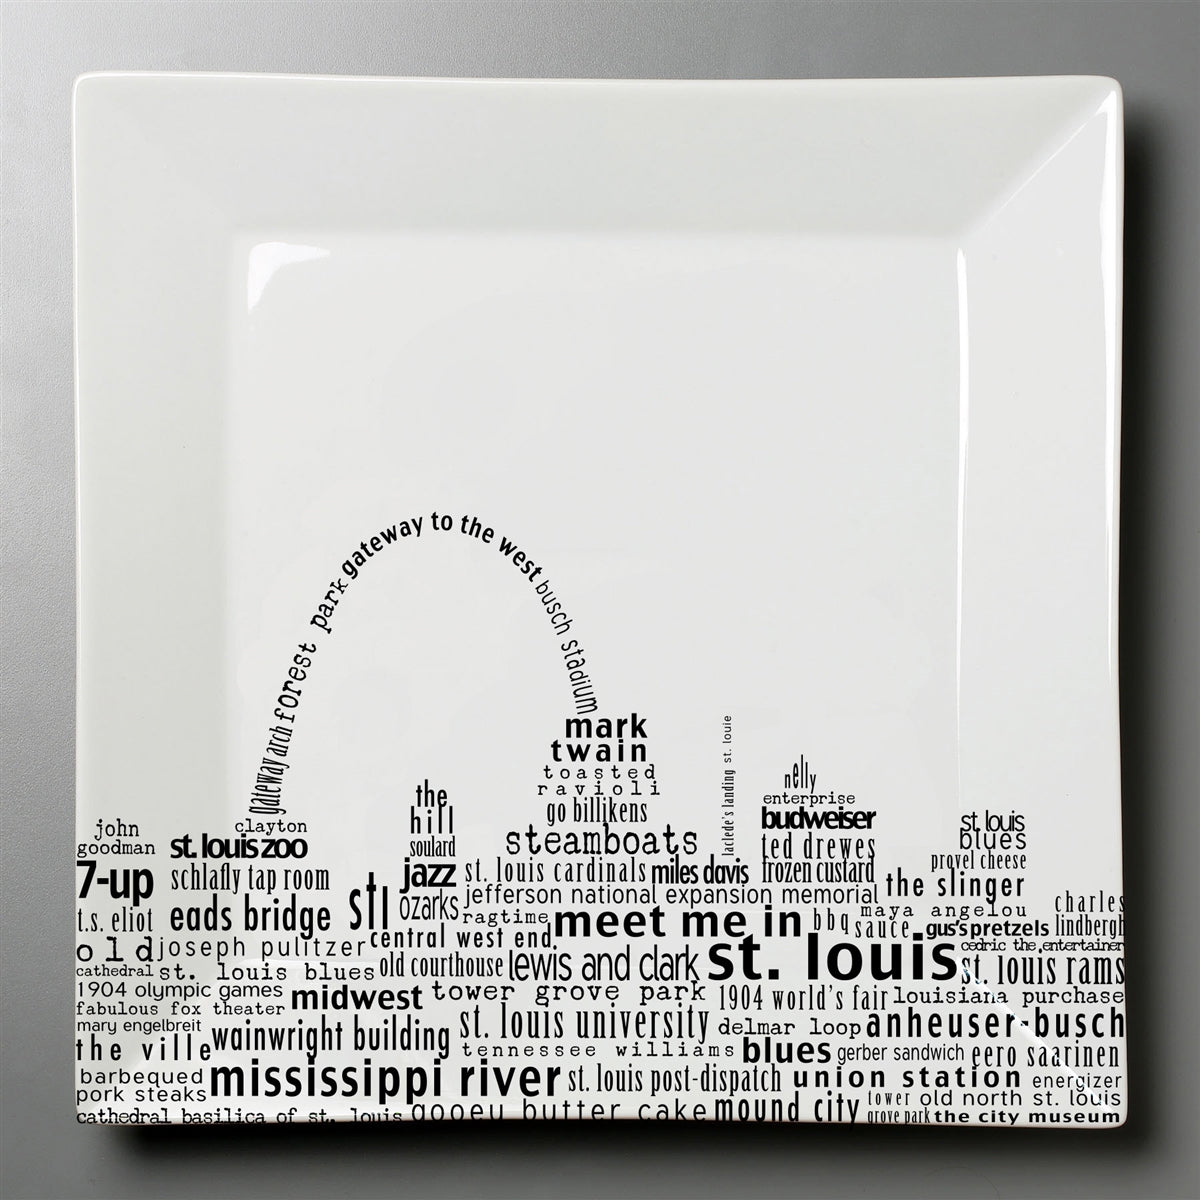 St. Louis Dish - Small Square Plate